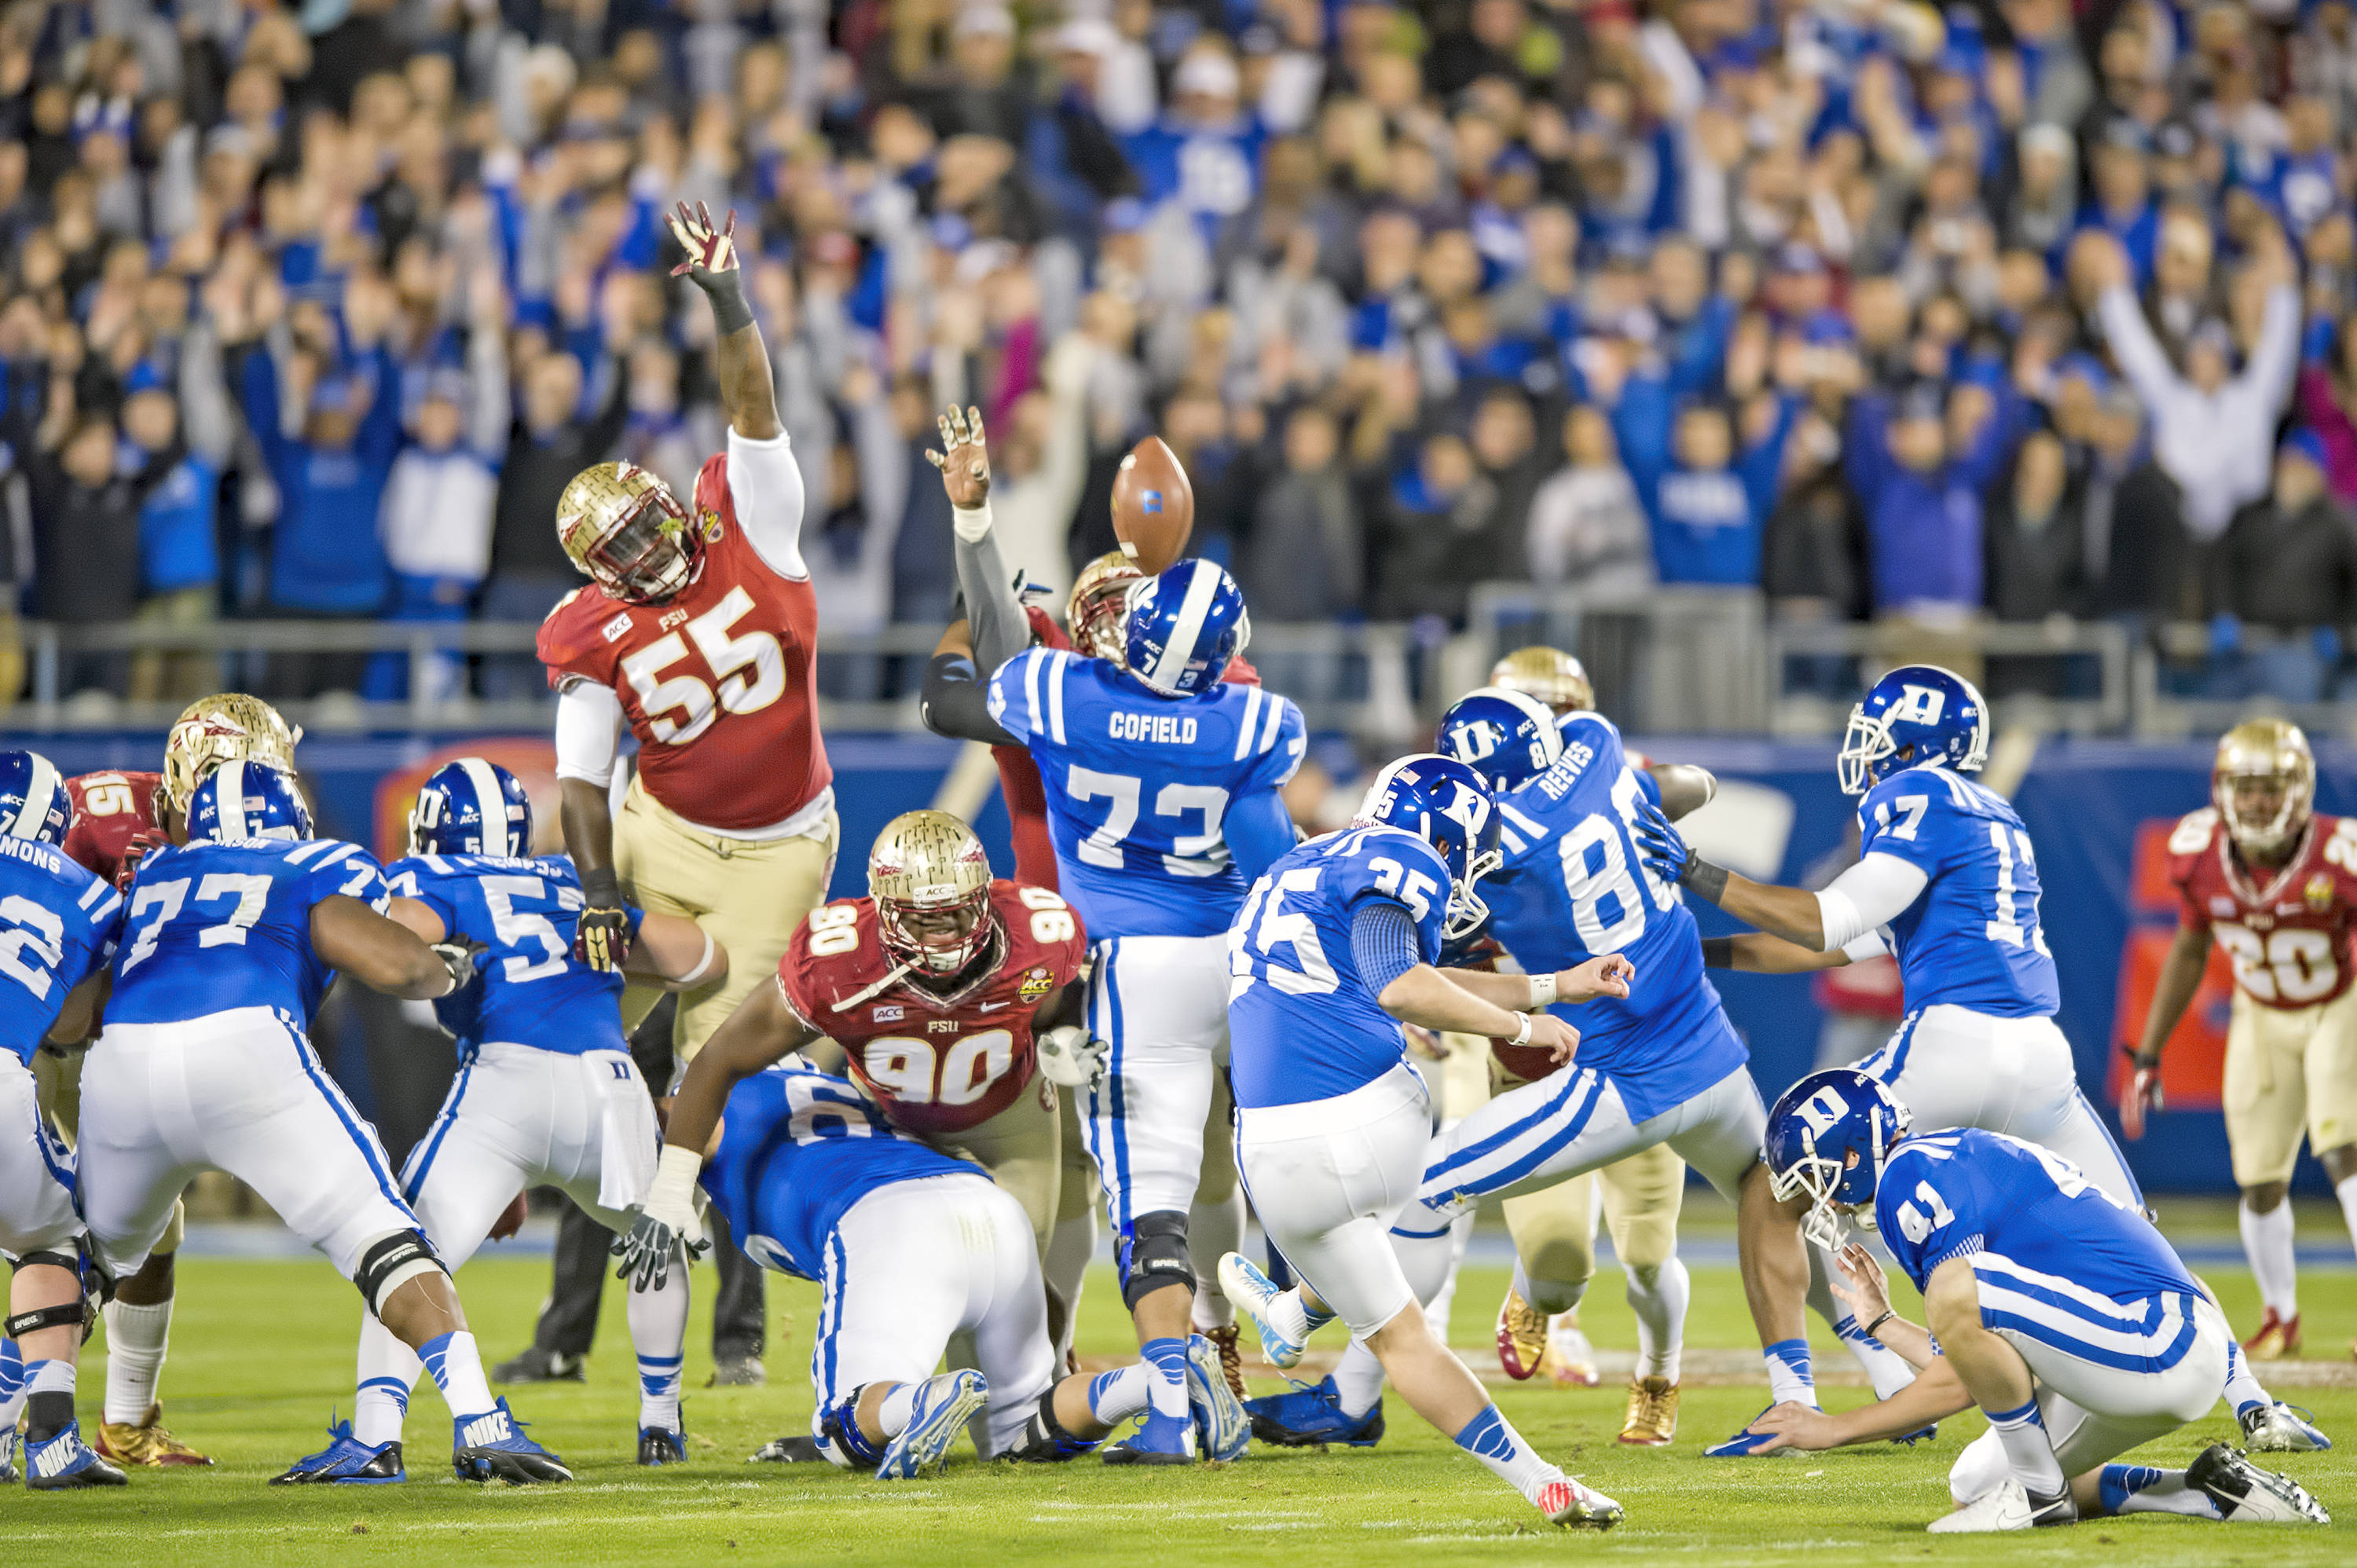 Jacobi McDaniel leaps in an effort to block a Duke FG attempt. Duke missed the FG wide right.